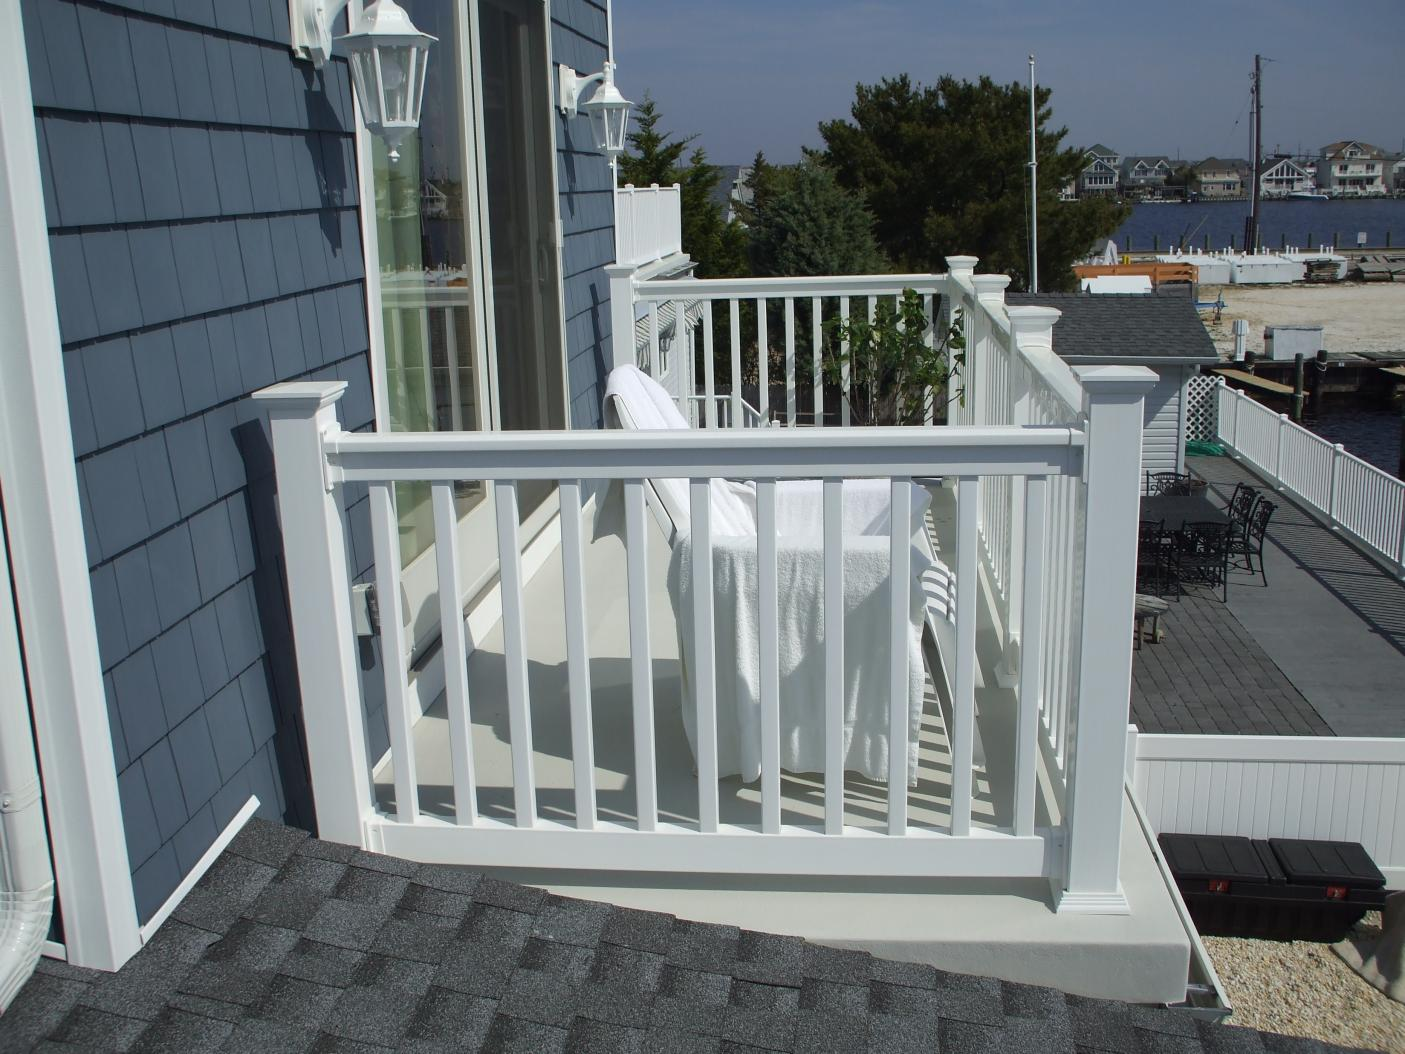 Top glass balcony railing images for pinterest tattoos for Glass balcony railing